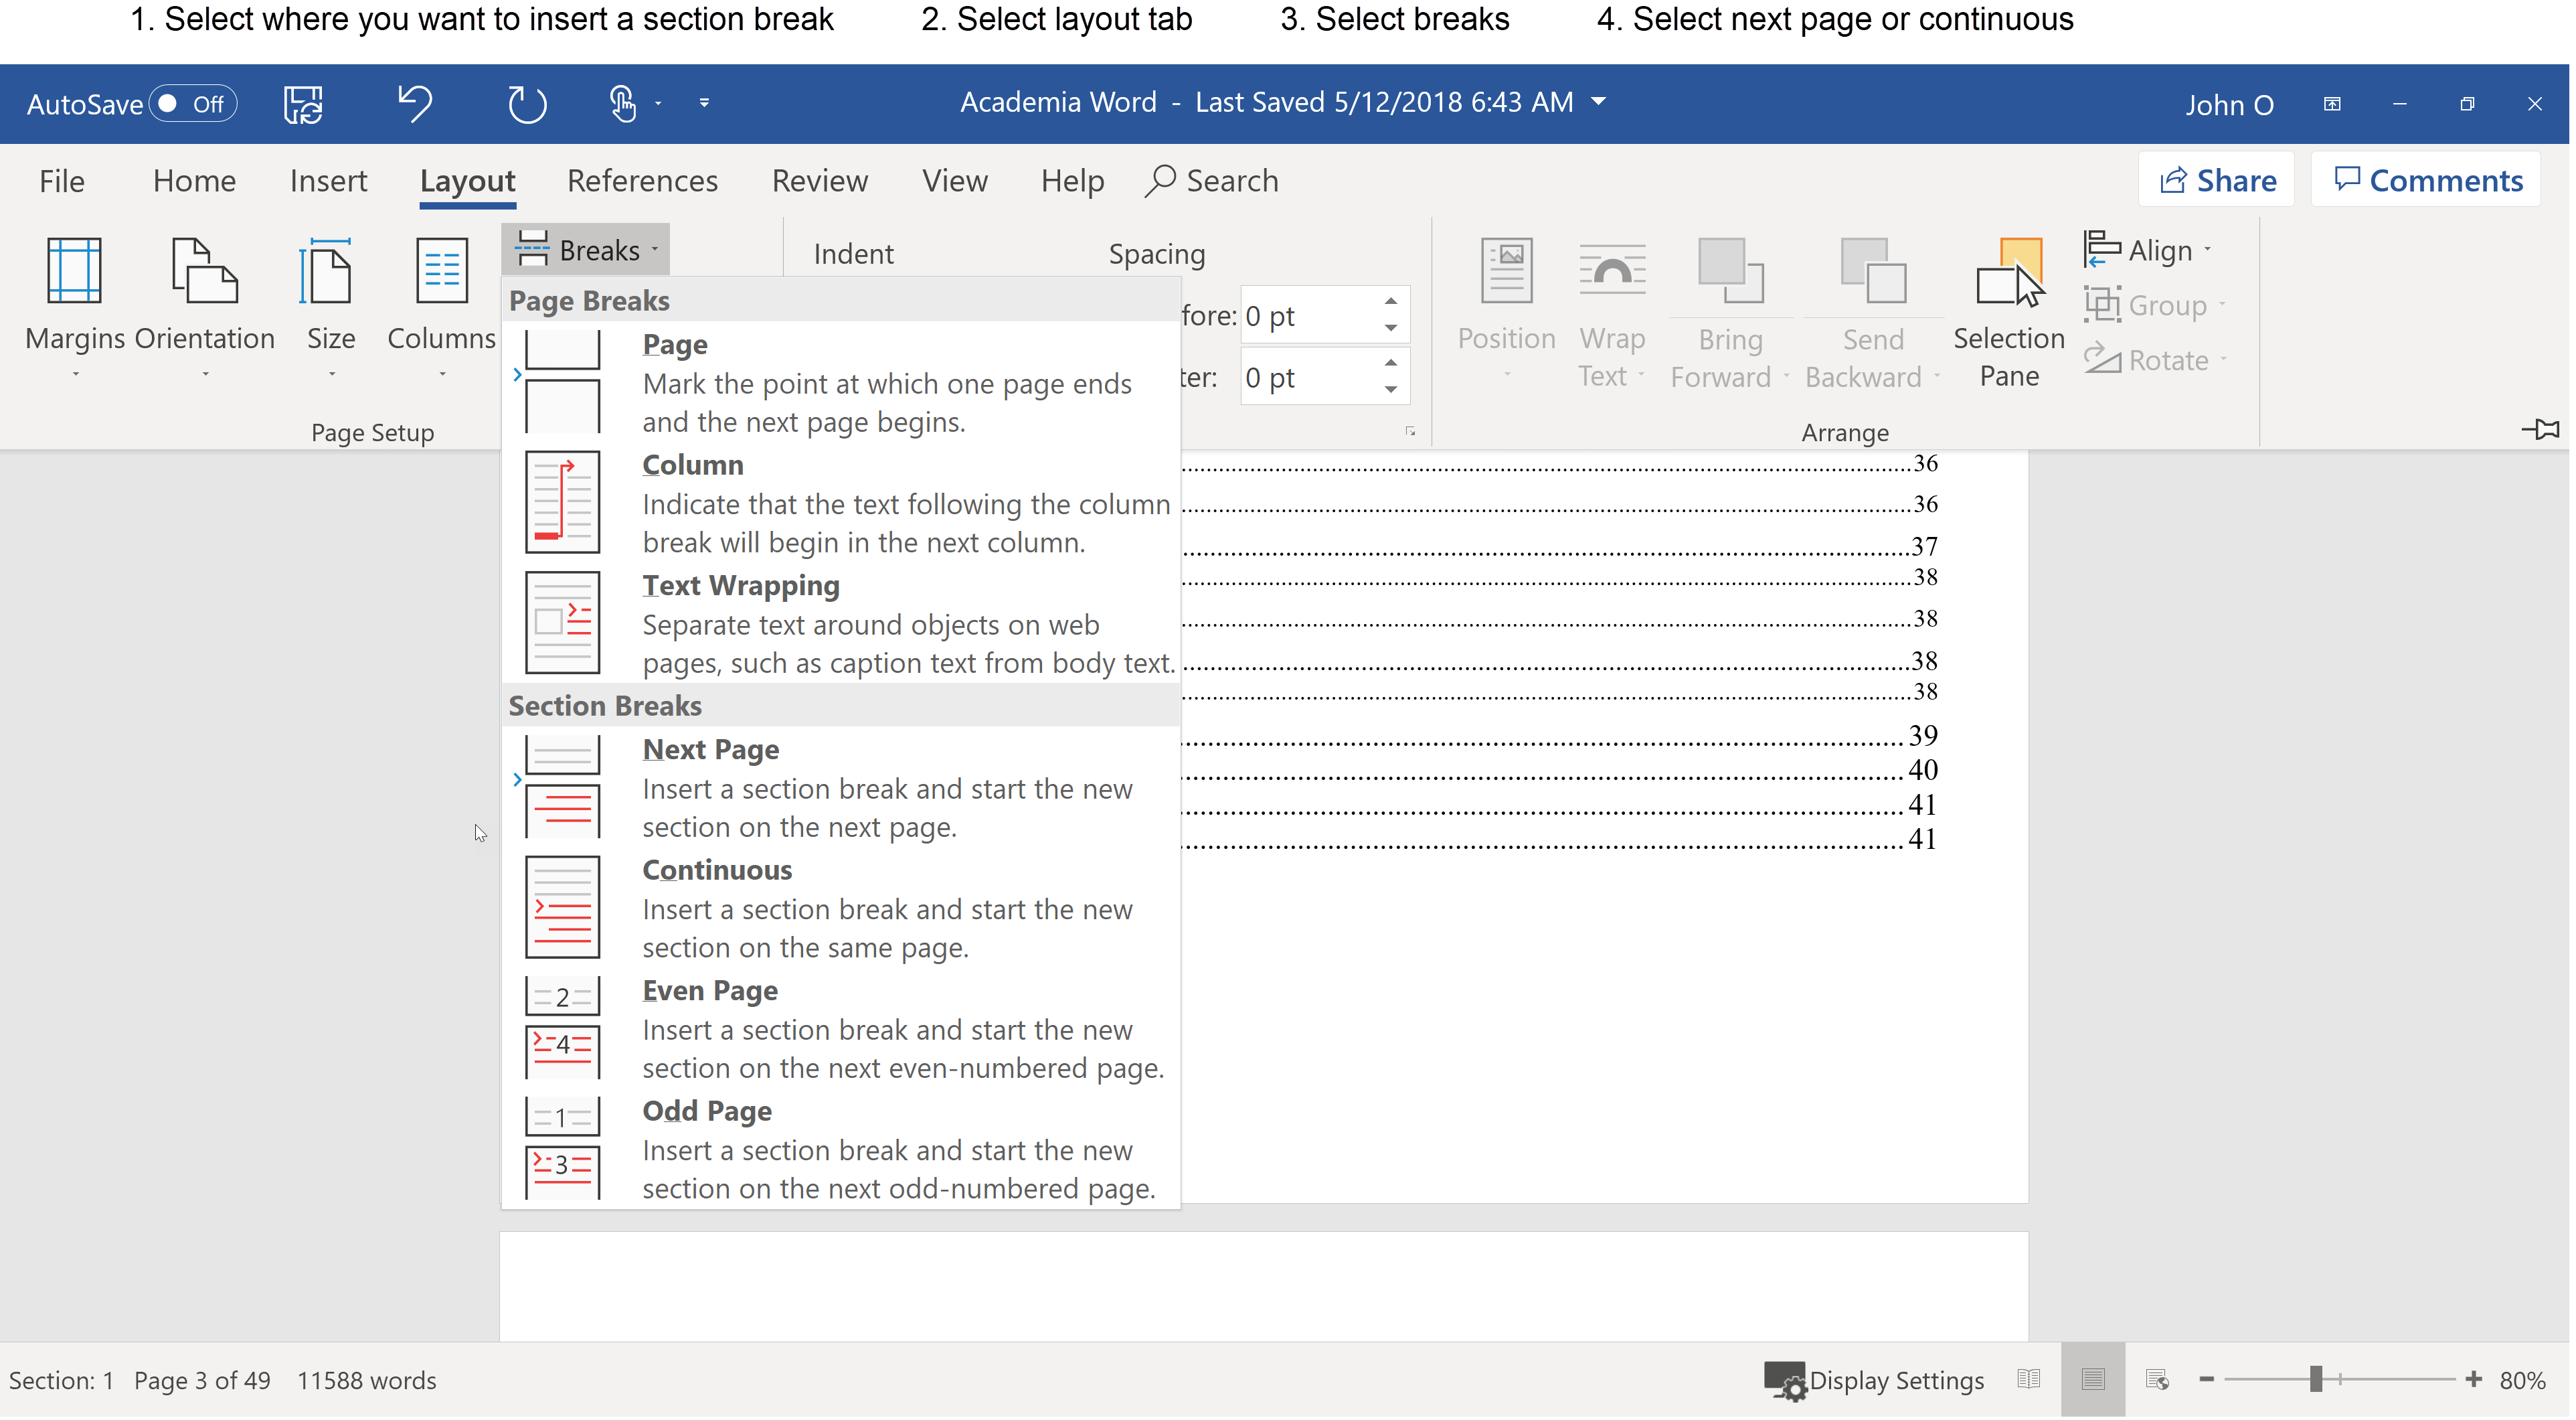 How to create section break in a Word document: 1 Select where you want to insert the section break 2 Select layout tab 3 Select breaks 4 Select next page or continuous